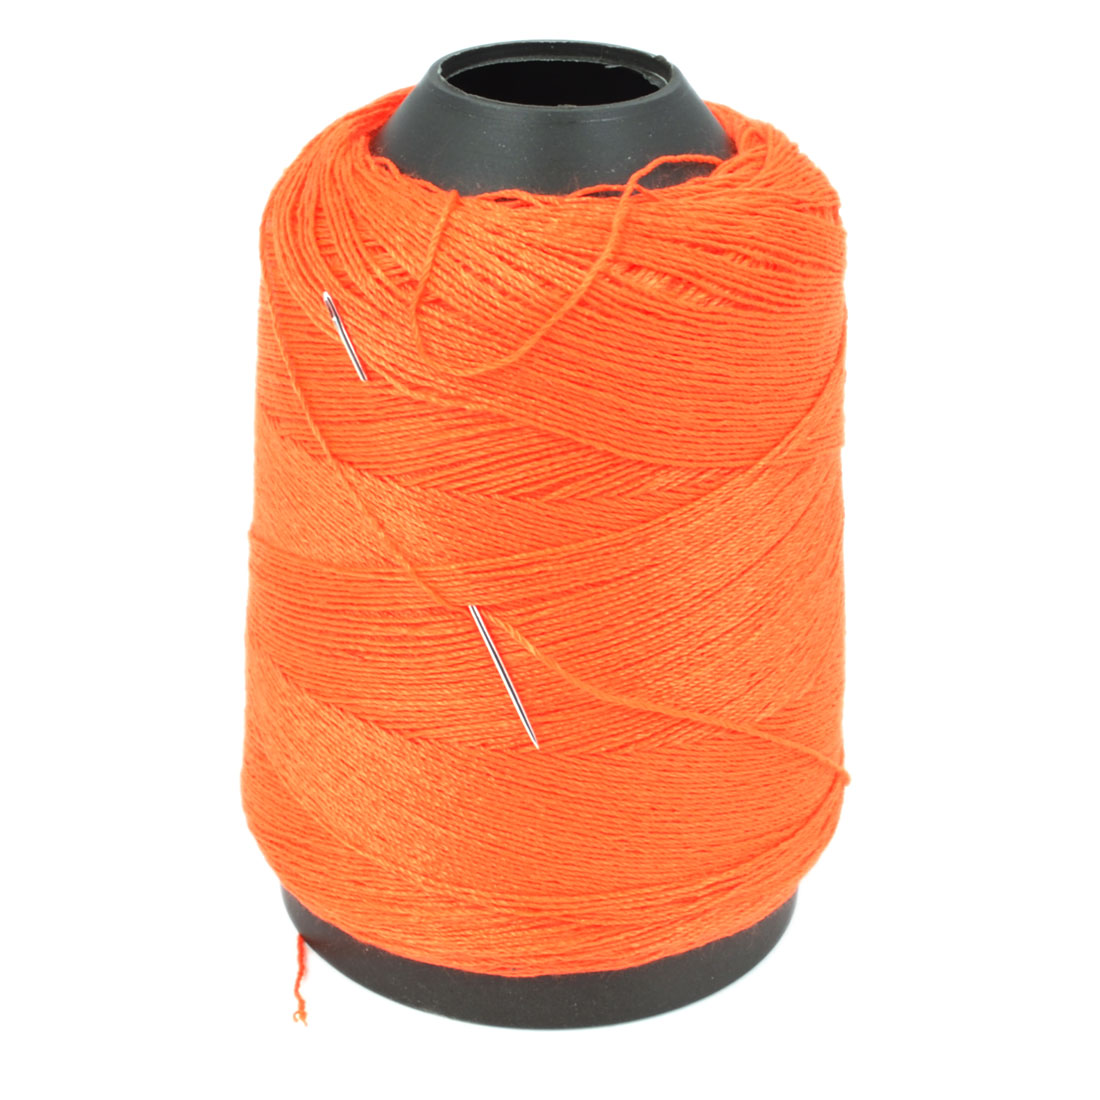 Tailor Quilting Stitching Orange Red Cotton Sewing Thread Spool w Needle